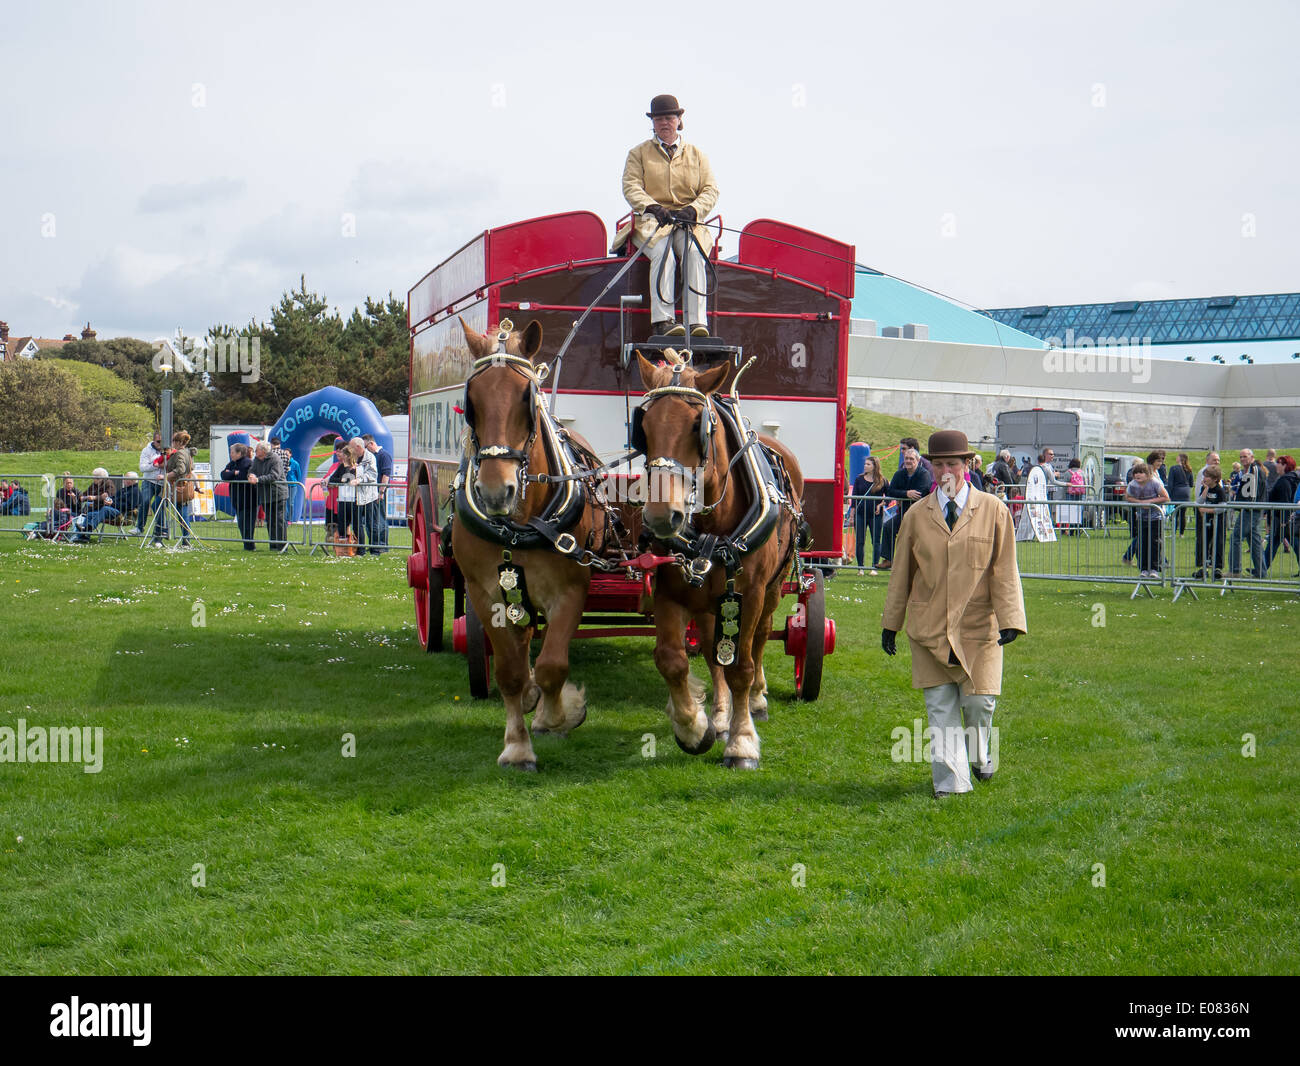 A Heavy Horse Drawn Furniture Removal Carriage Is Displayed In An